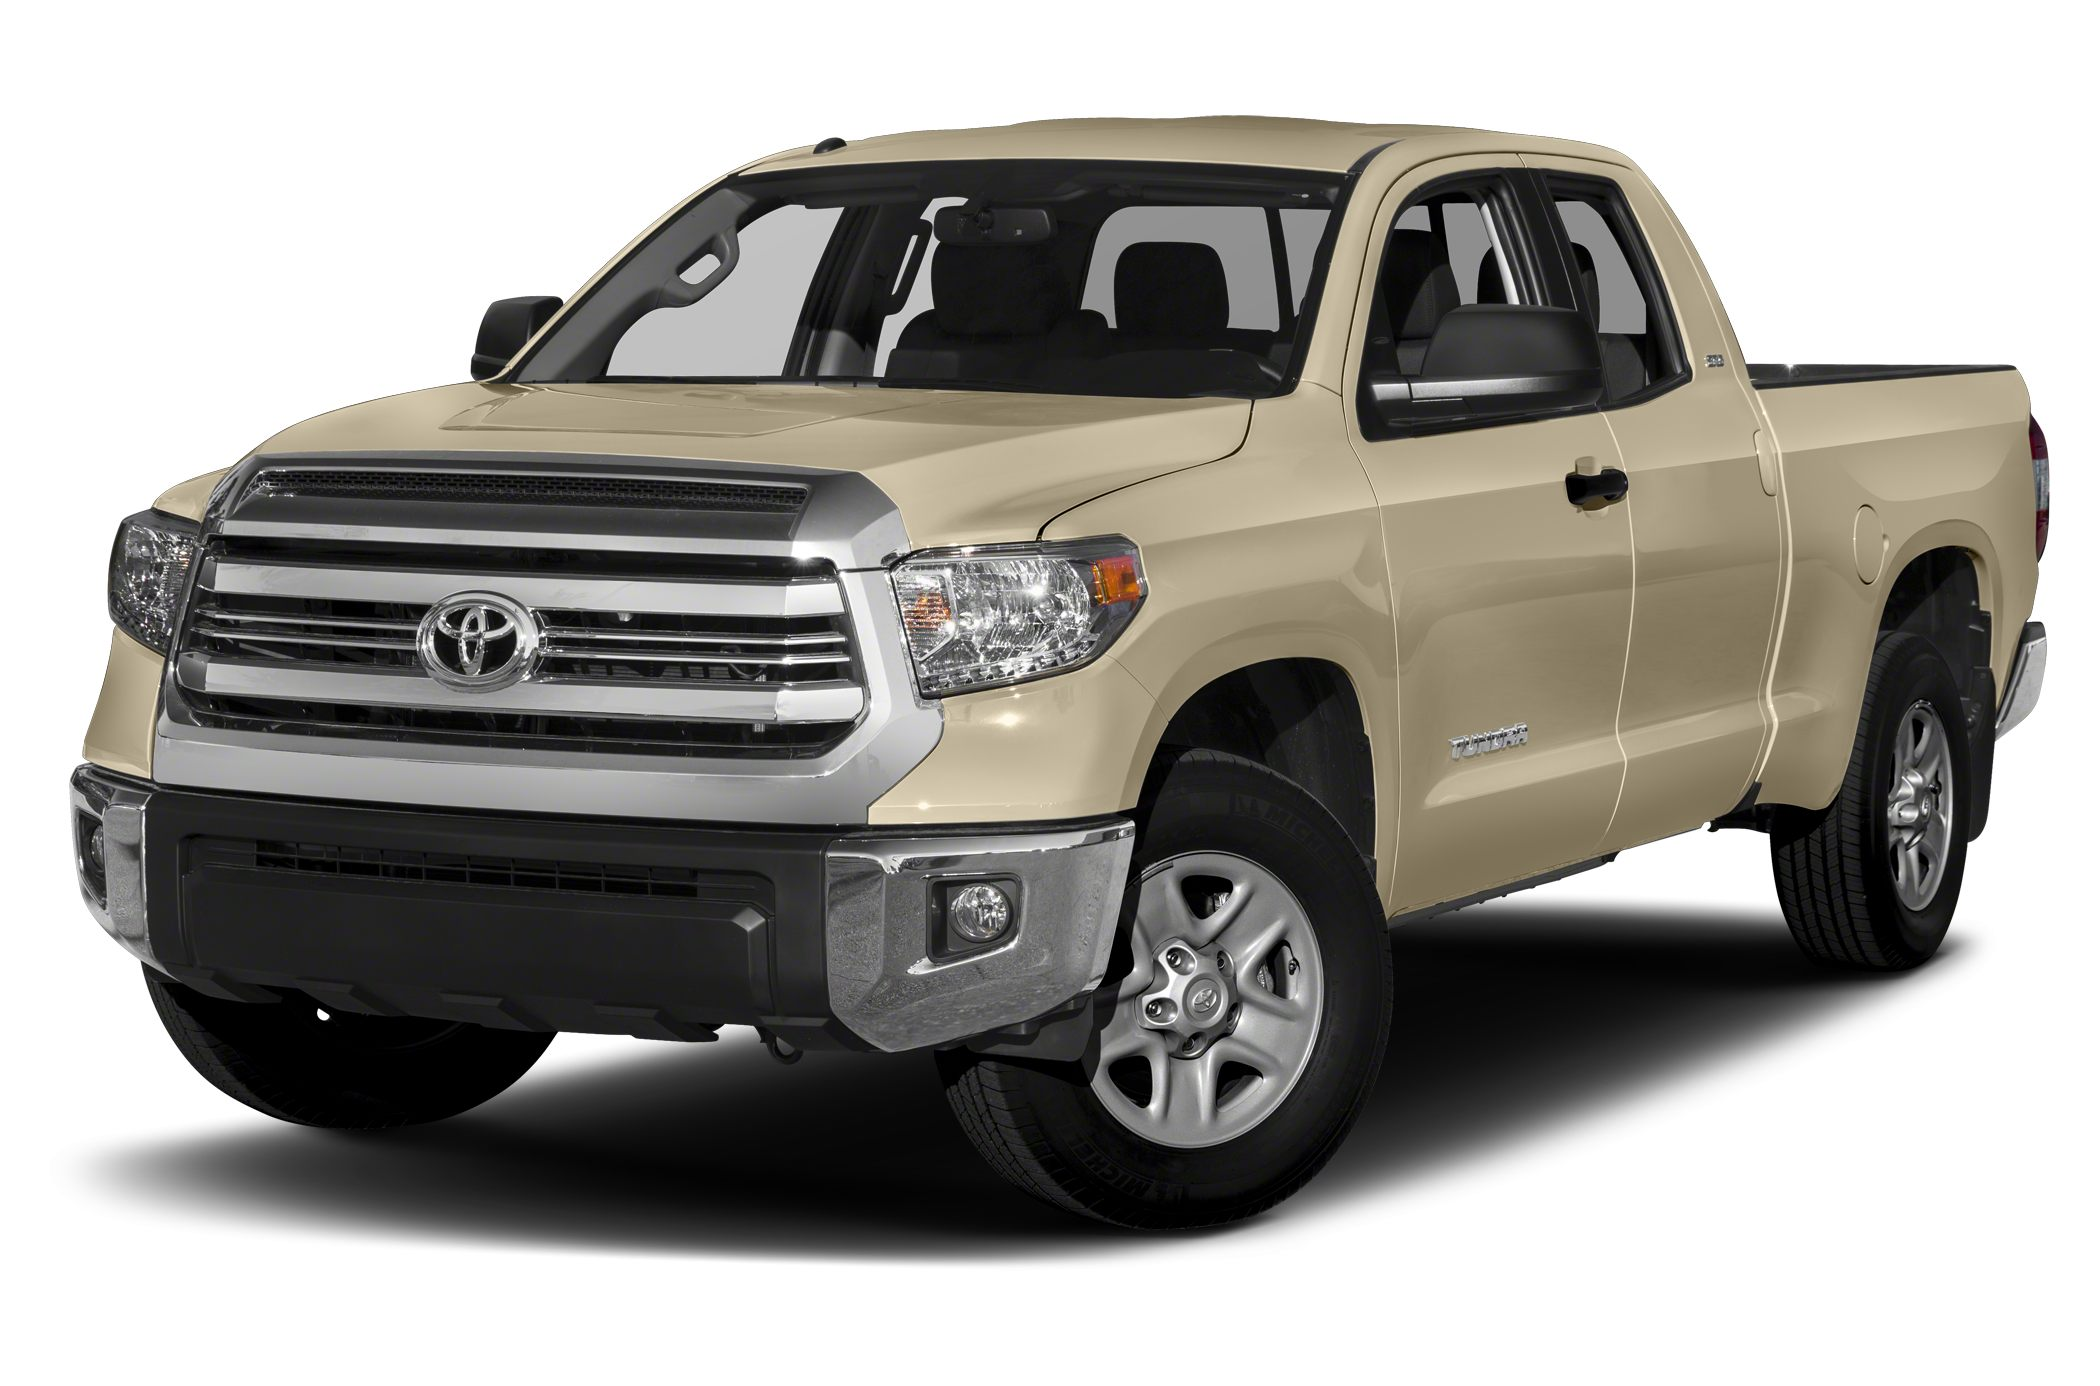 2017 Toyota Tundra SR5 5.7L V8 4x4 Double Cab Long Bed 8 ft. box 164.6 in. WB